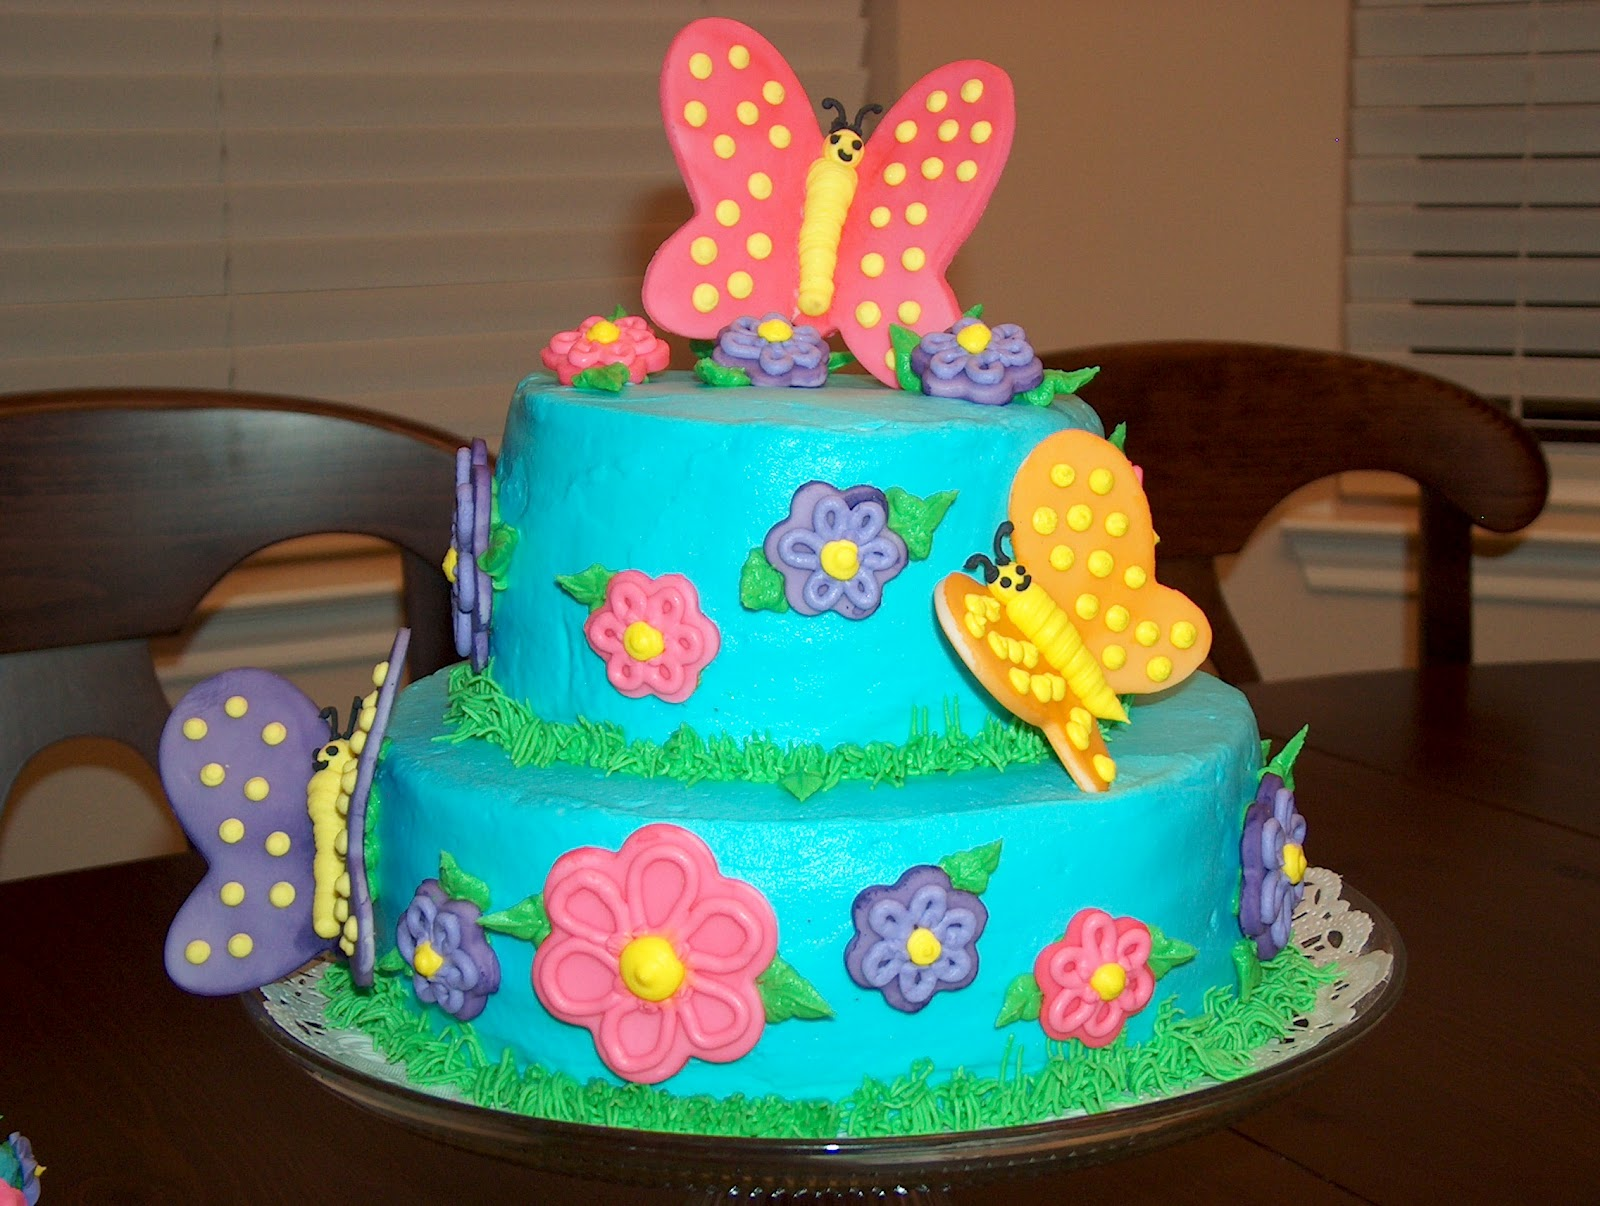 Birthday Cake Decor Ideas : Themed Cakes, Birthday Cakes, Wedding Cakes: ButterFly Themed Cakes